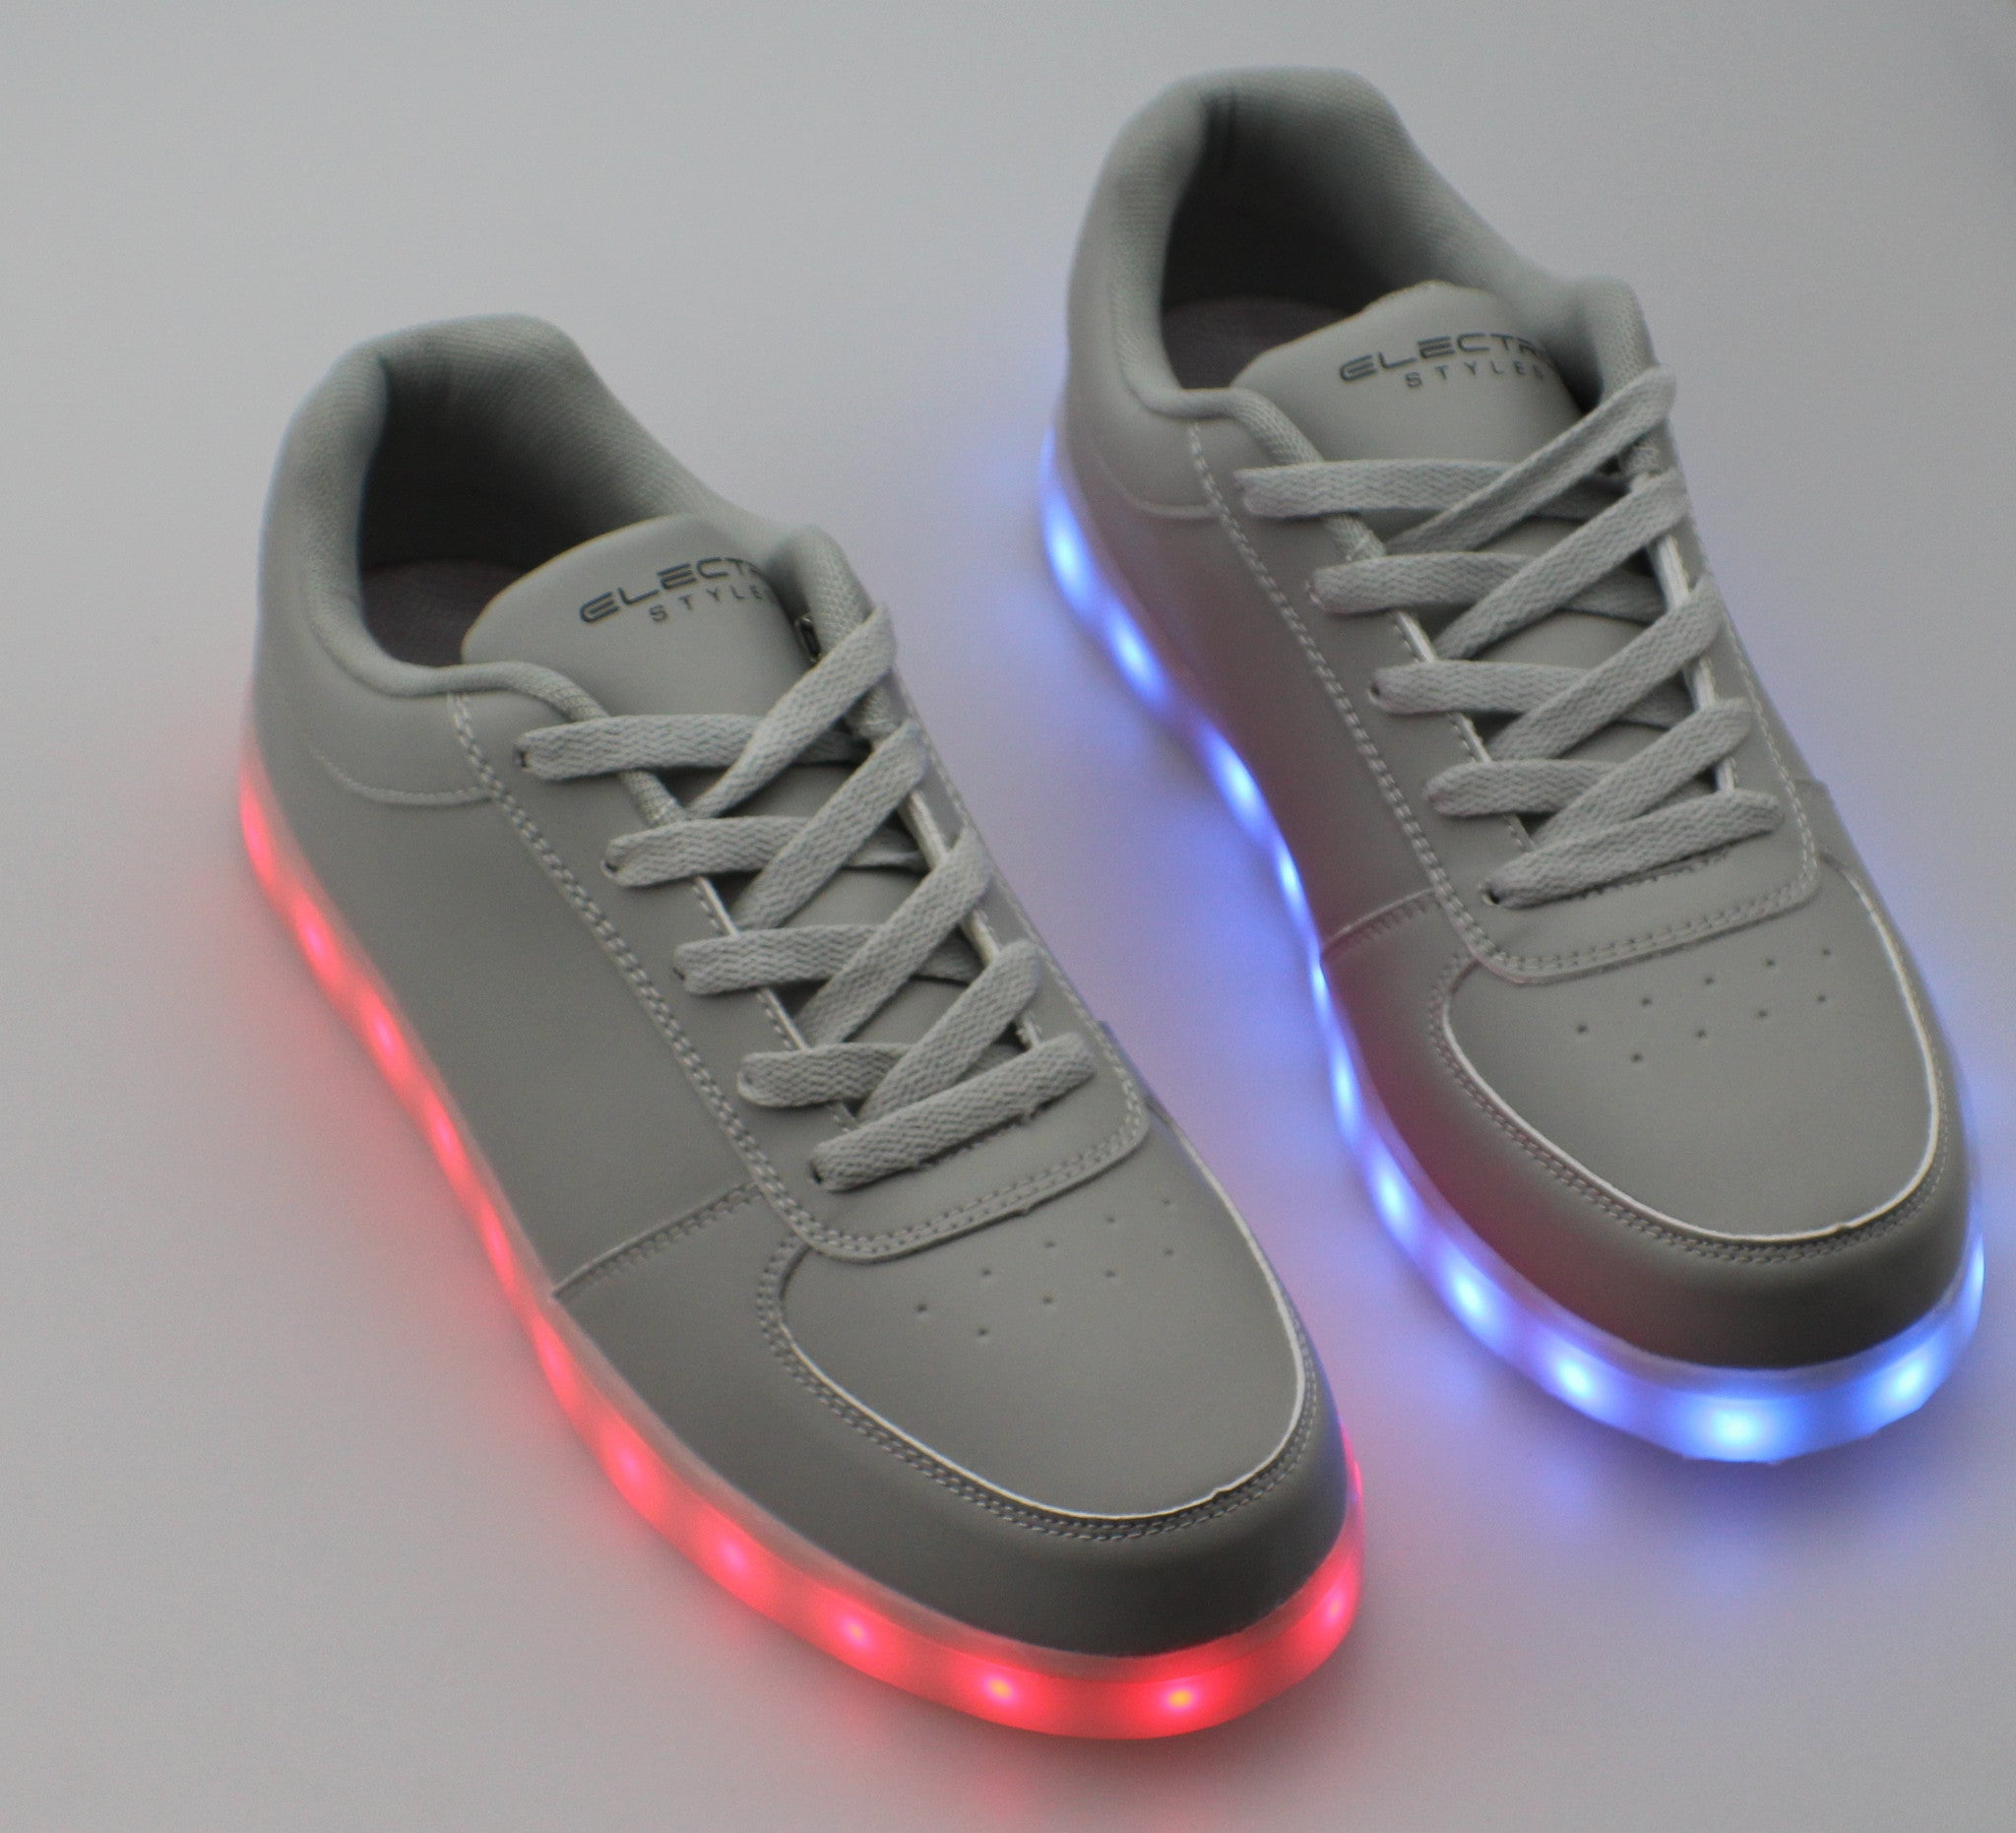 Light Up Shoes - Stone Grey - Electric Styles | World's Number 1 Light Up Shoe Store - {product_type}} - Grey / Men's / Size 12 - 2